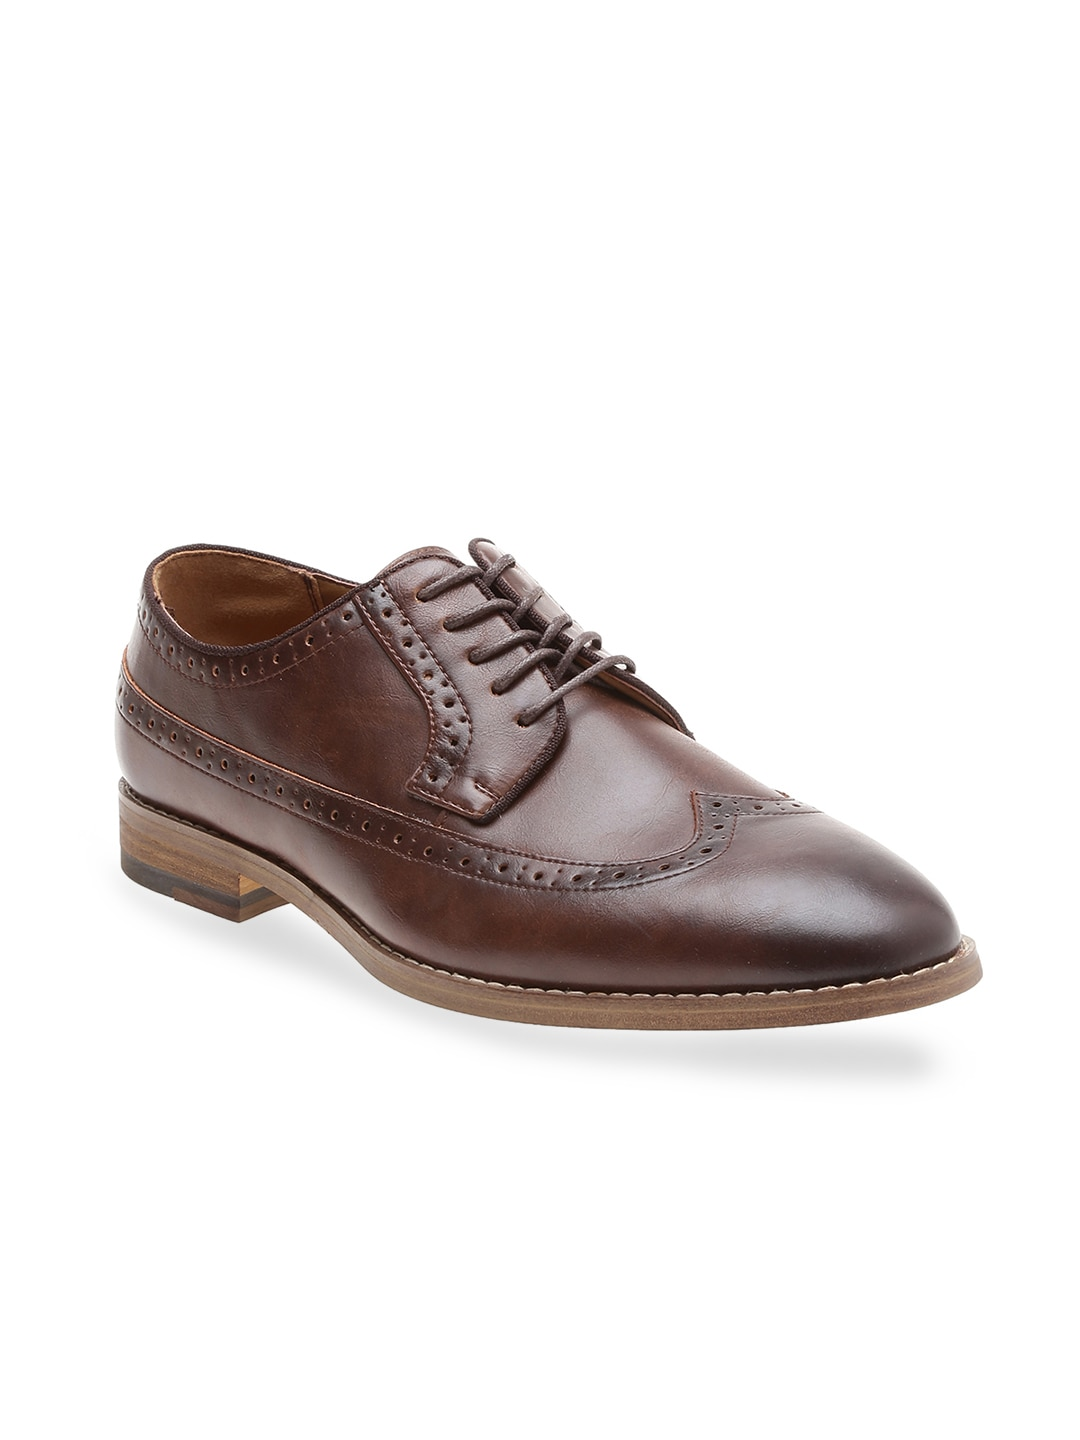 Call It Spring Men Brown Formal Derby Shoes image